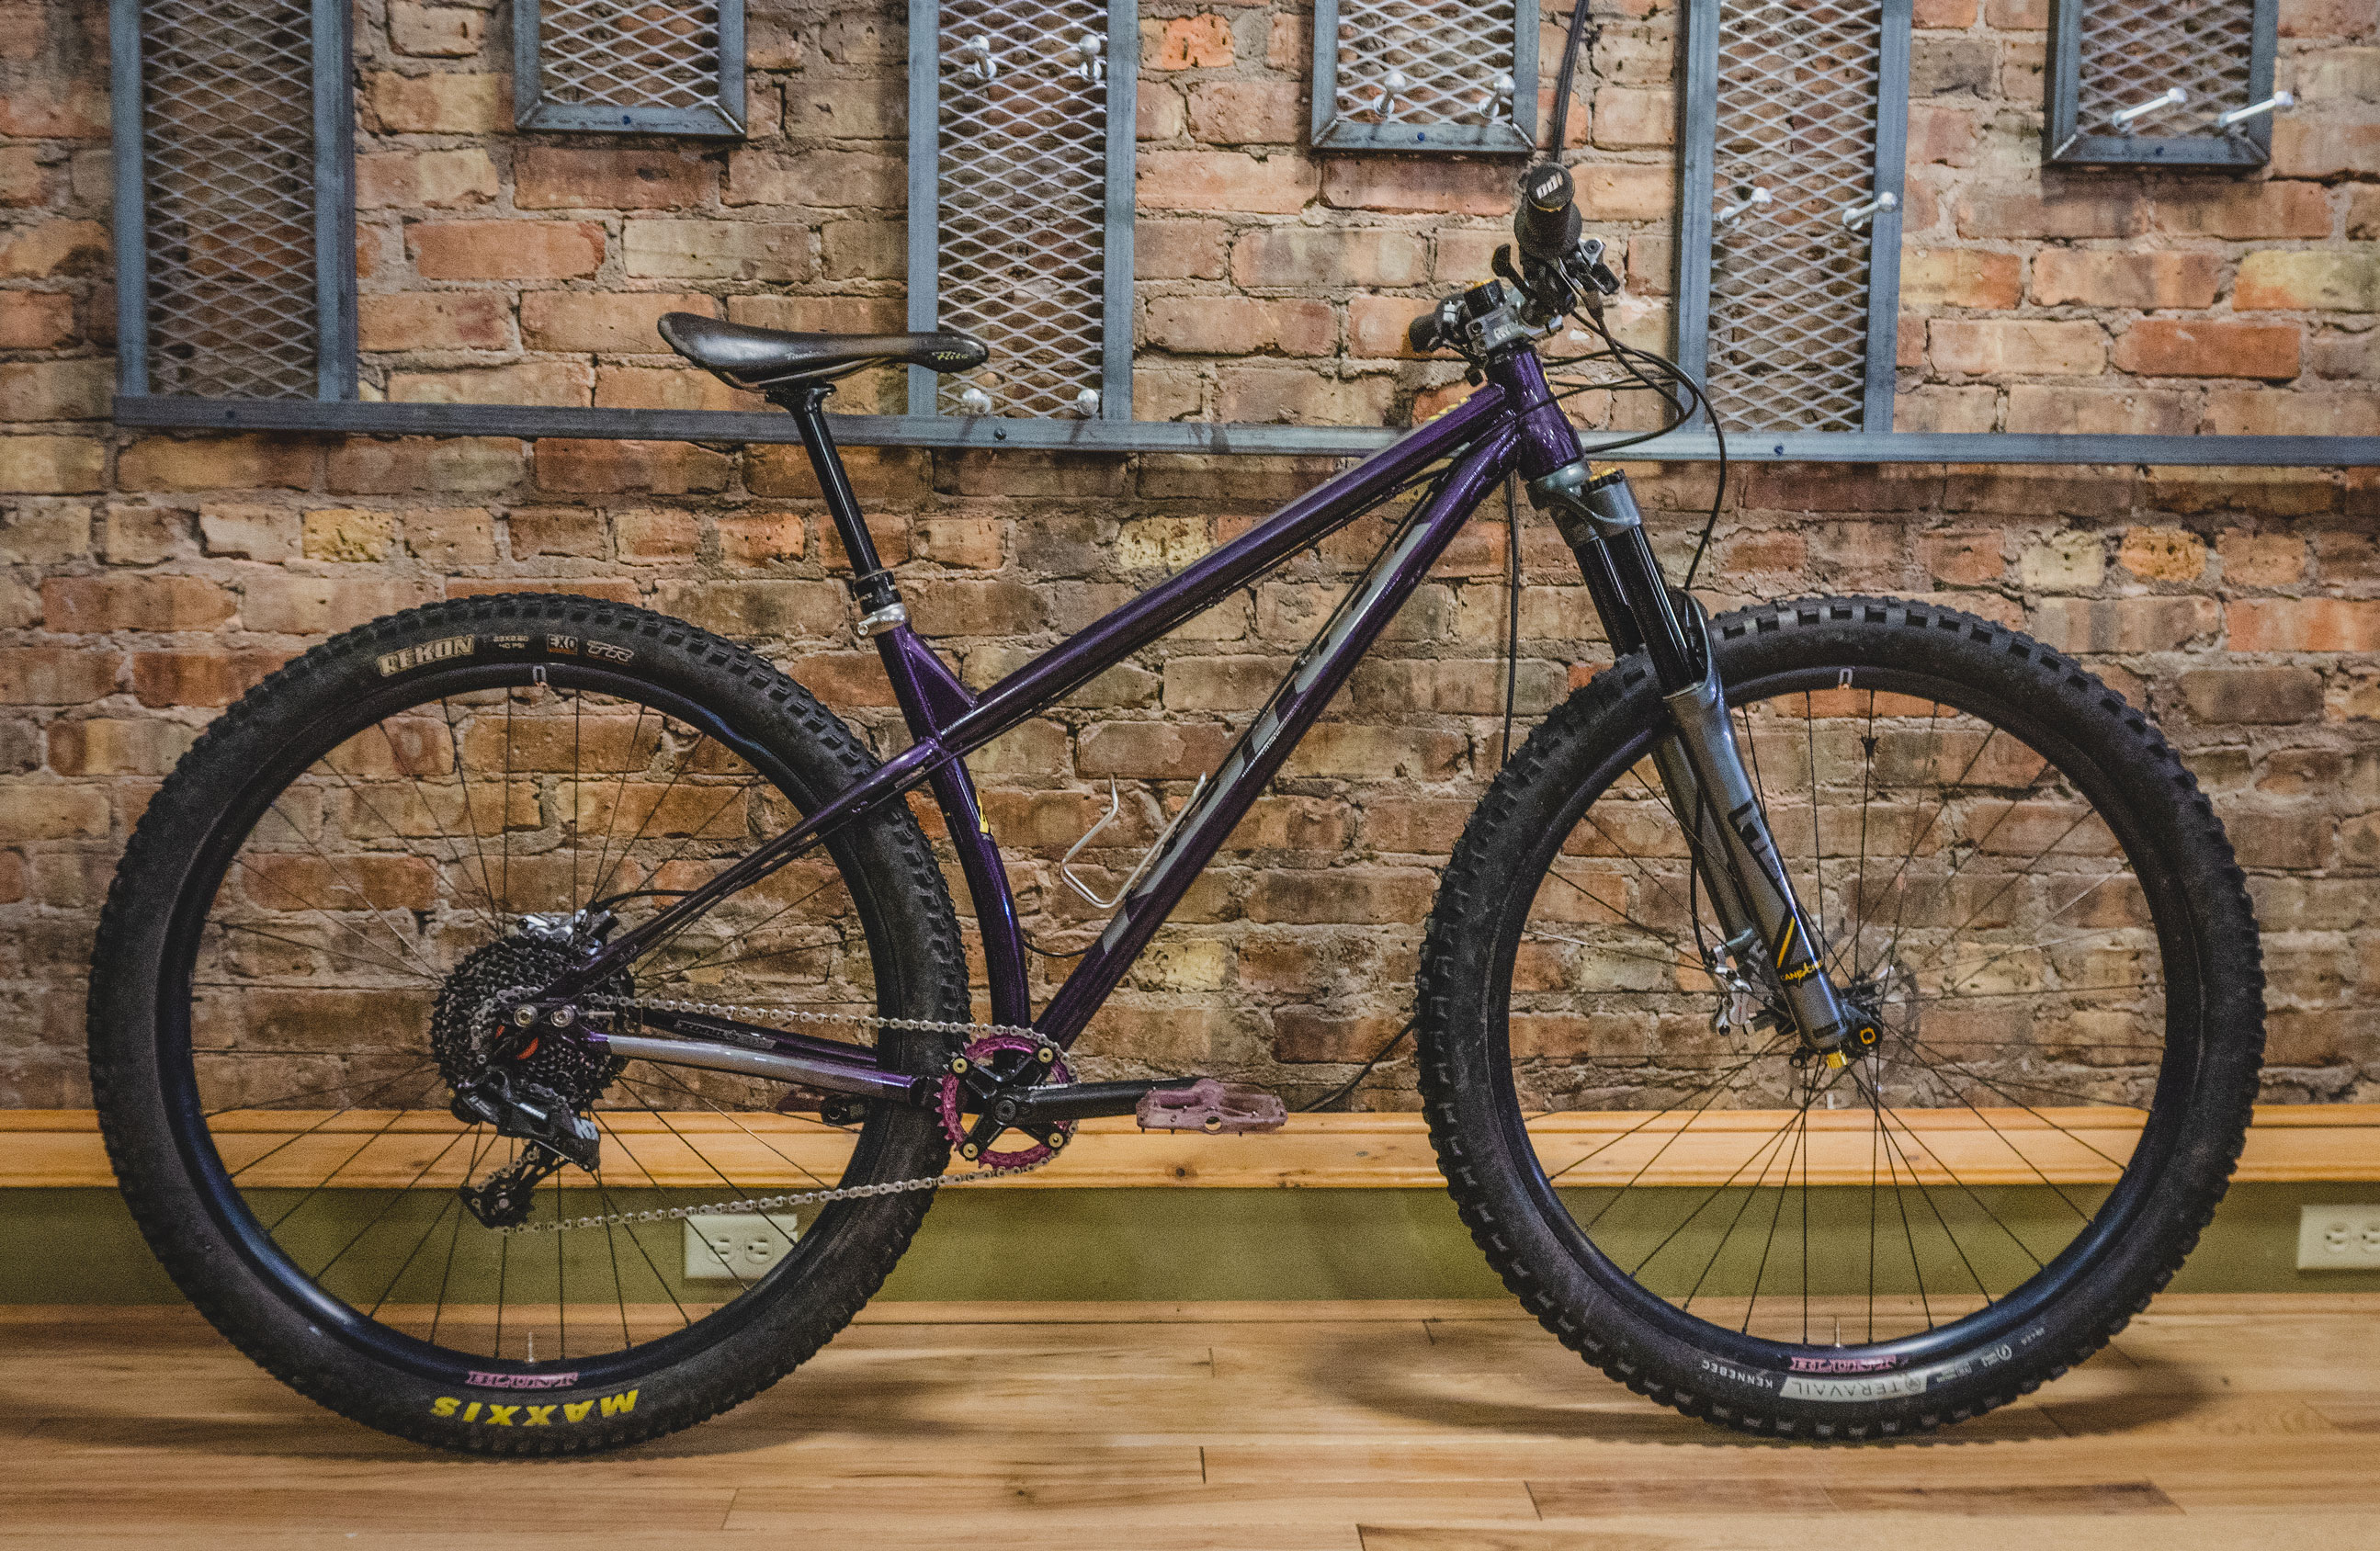 2fad87bd802 Steel hardtails are pretty popular among the shop employees. When the  purple colorway Honzo ST was released, almost all of us ordered a frame.